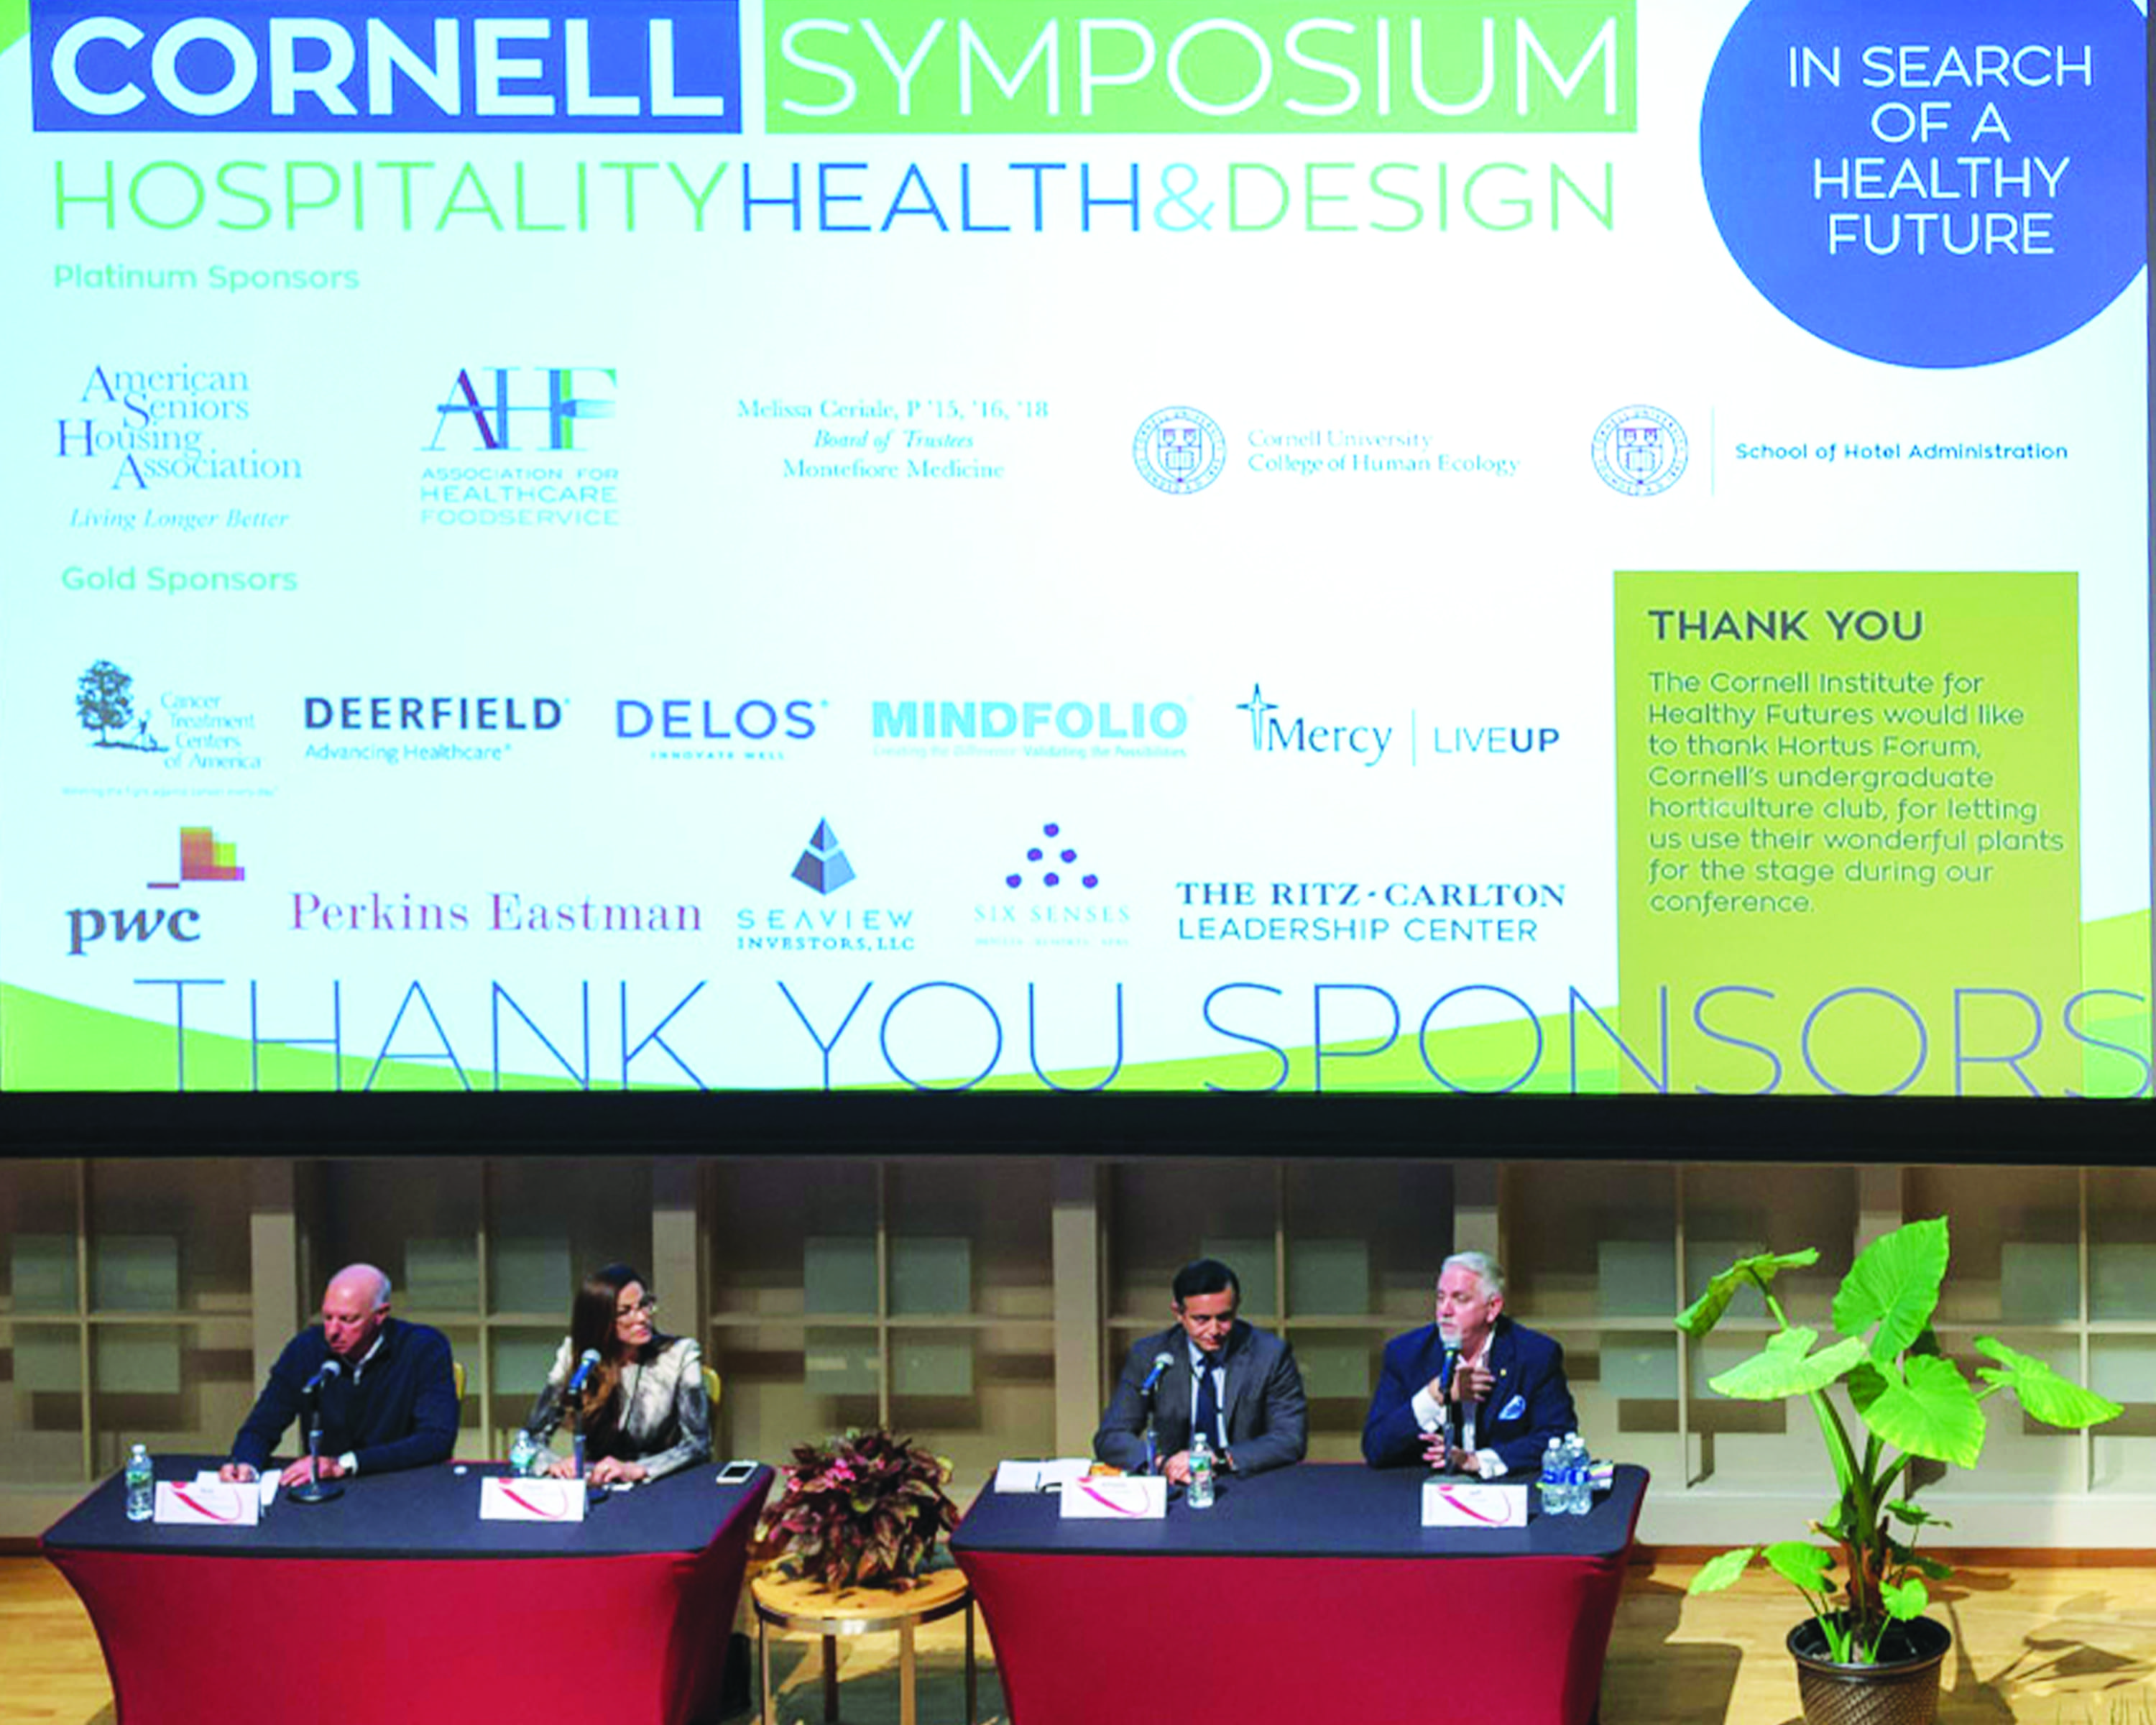 Photo of powerpoint slide containing sponsors for a CIHF conference, displayed during the conference in a lecture hall with people sitting beneath it on a stage